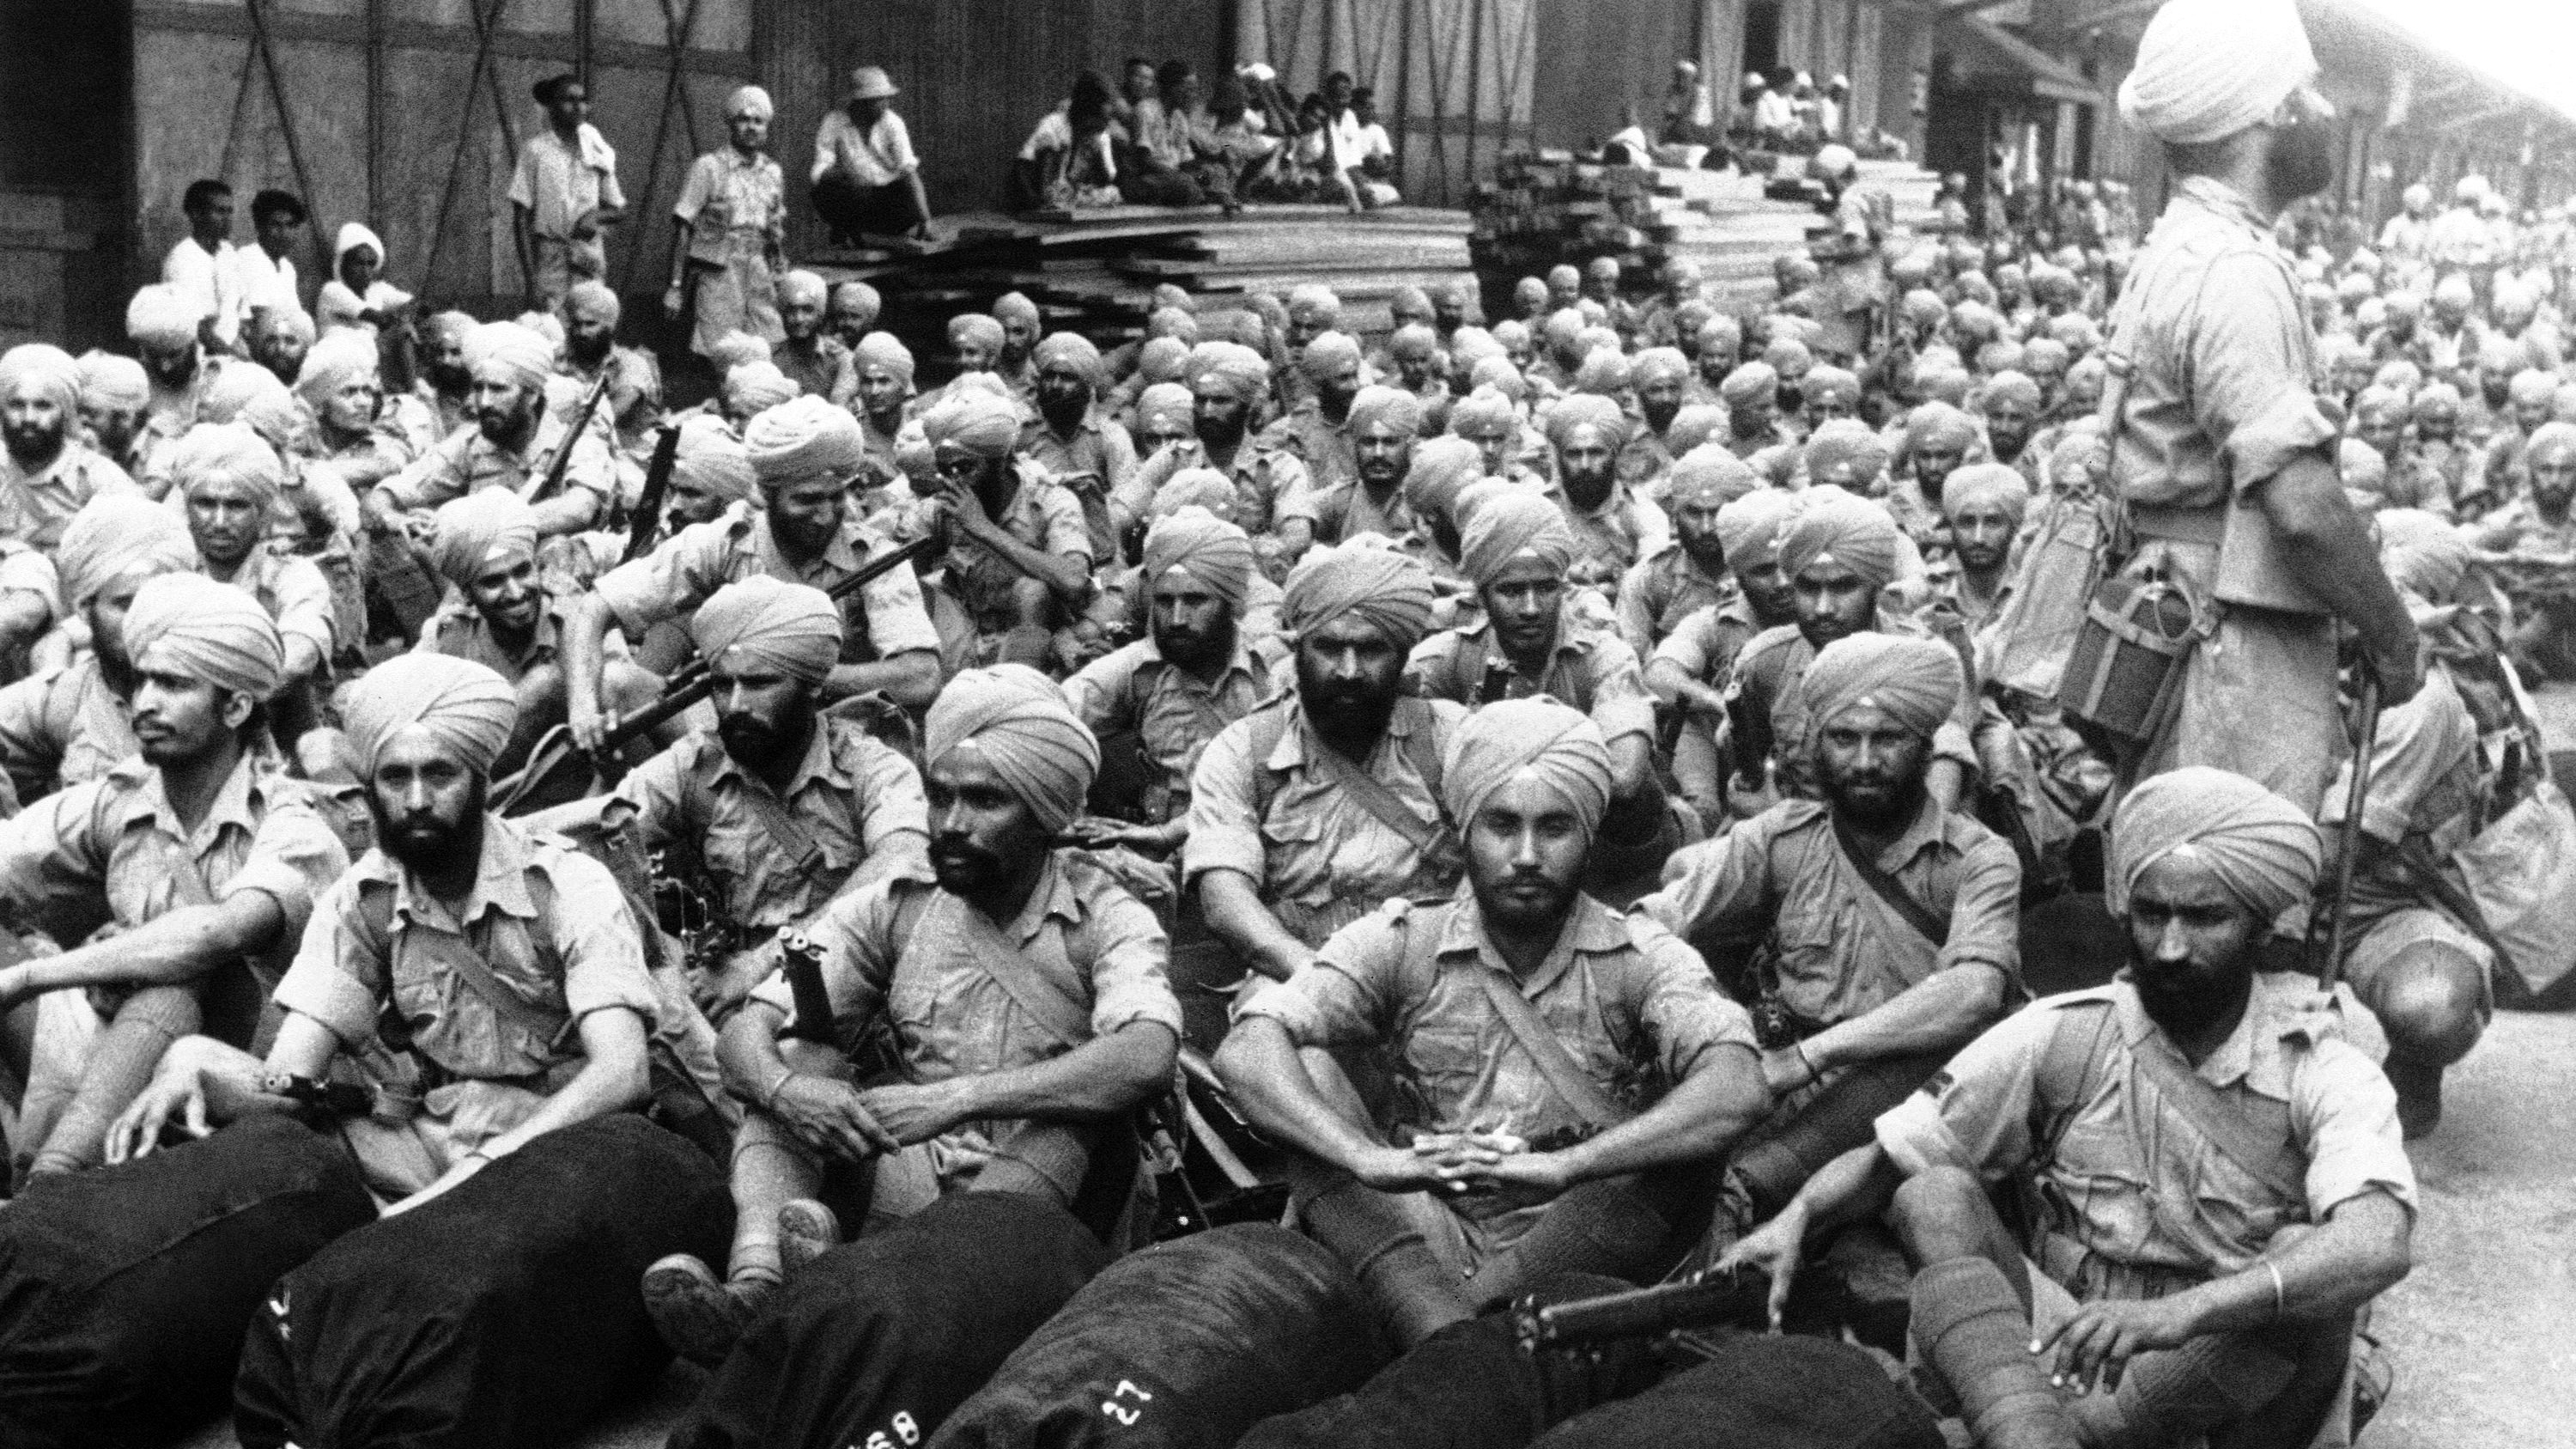 British Indian troops sit complacently on the wharf after their arrival in Singapore on March 31, 1941 to augment Royal crown forces on the Malayan Peninsula. (AP Photo)